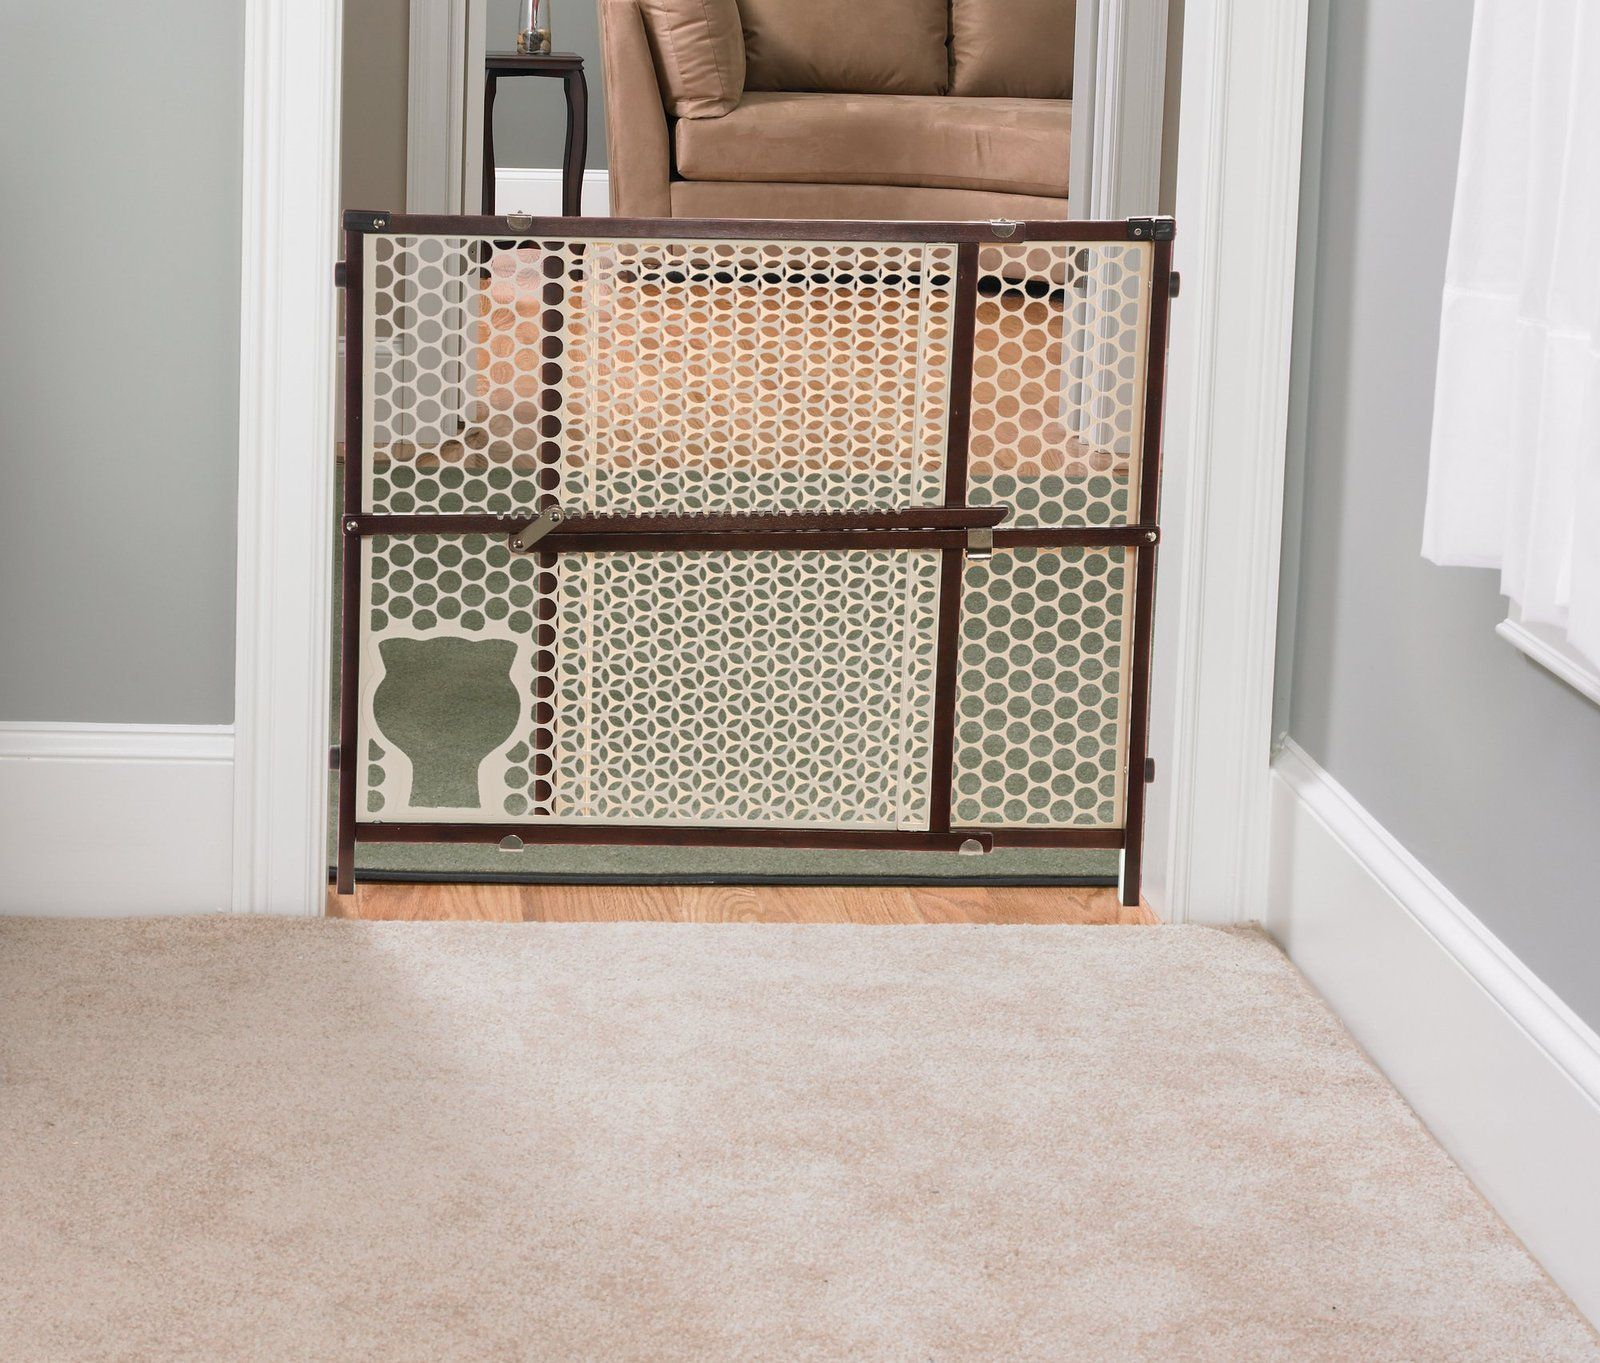 The Safety 1st Baby N Pet Gate Allows Small Pets To Pass Through,